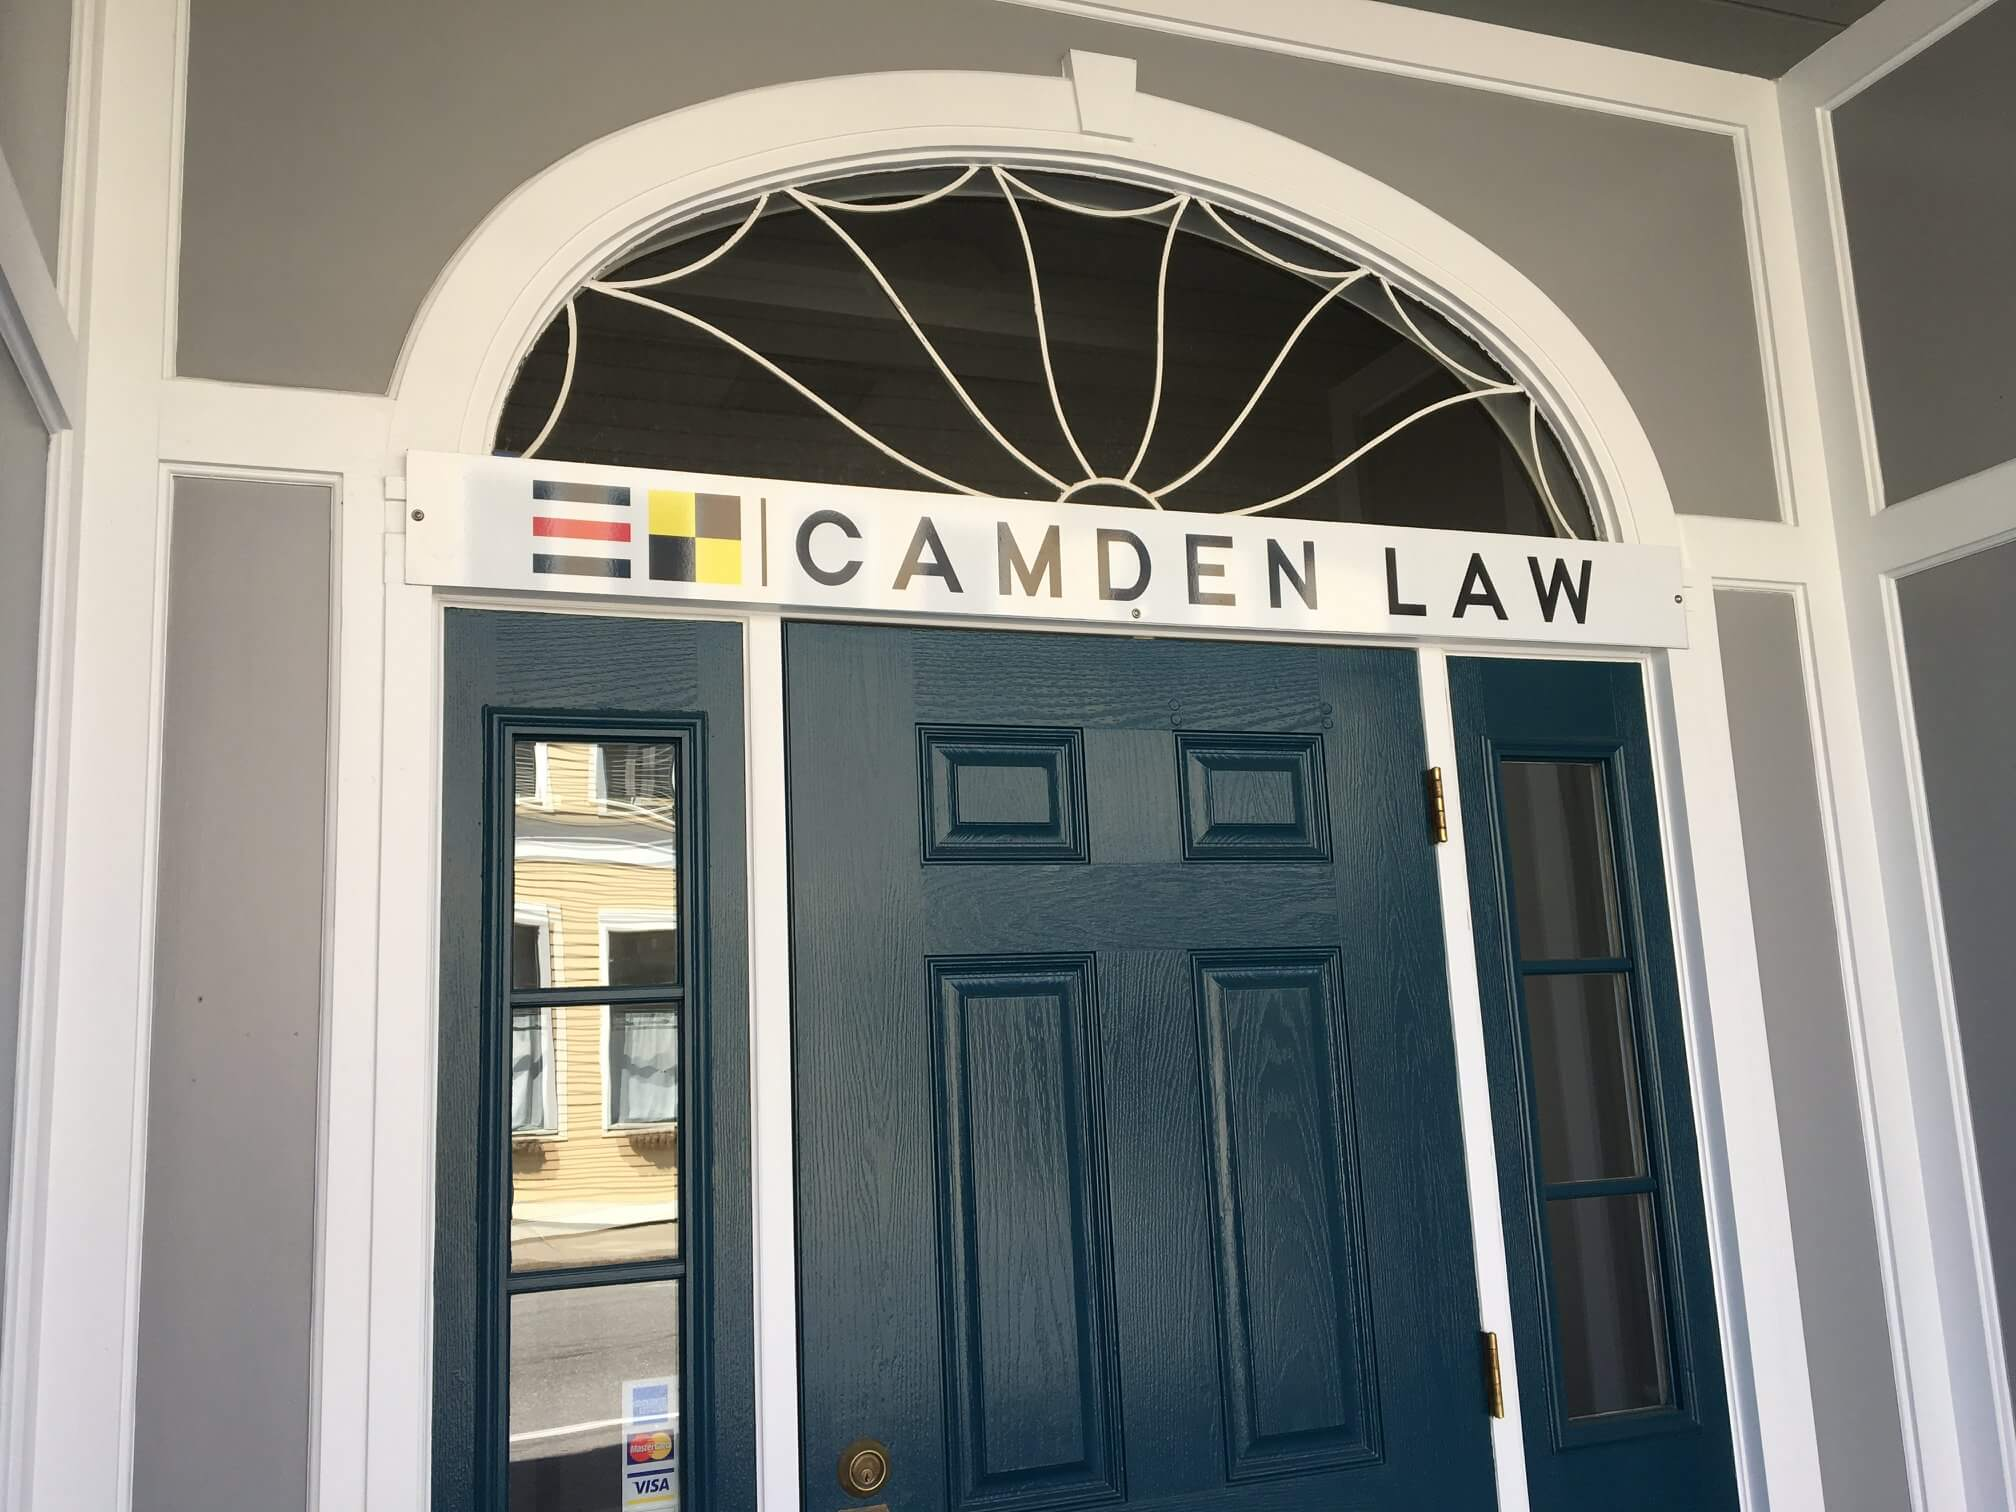 Introducing<br>Camden Law LLP